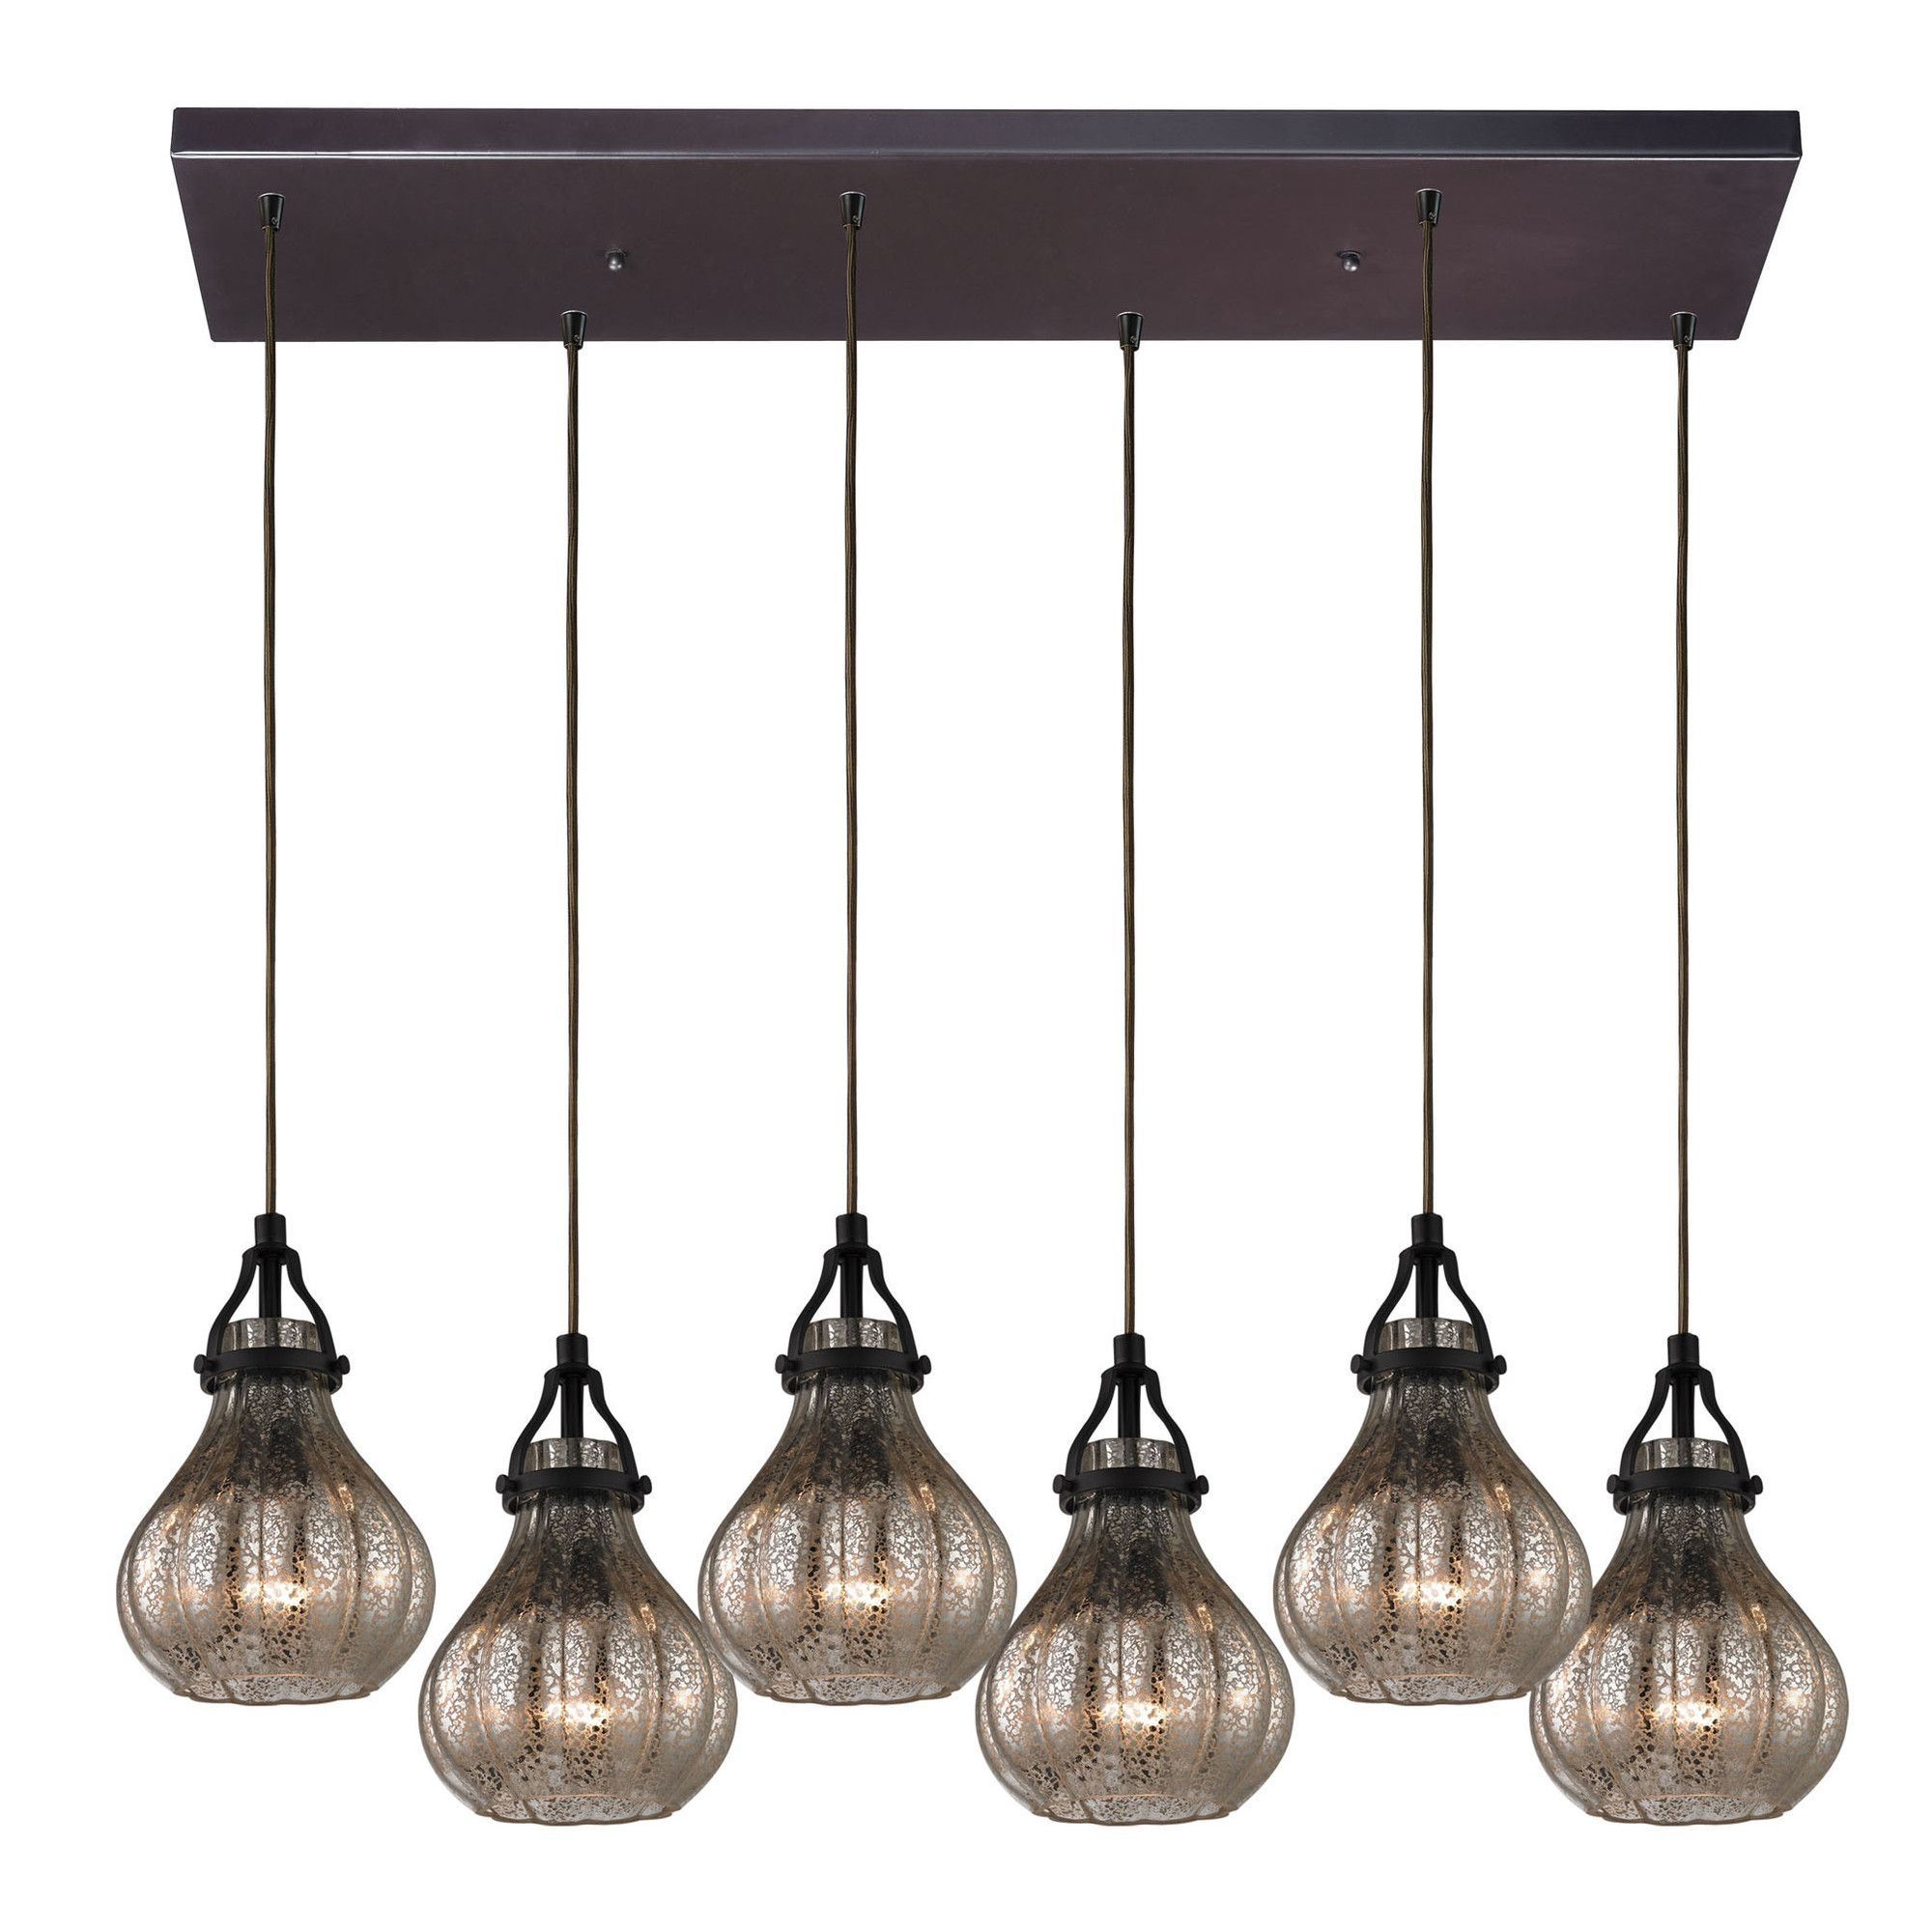 Orofino light kitchen island pendant products pinterest